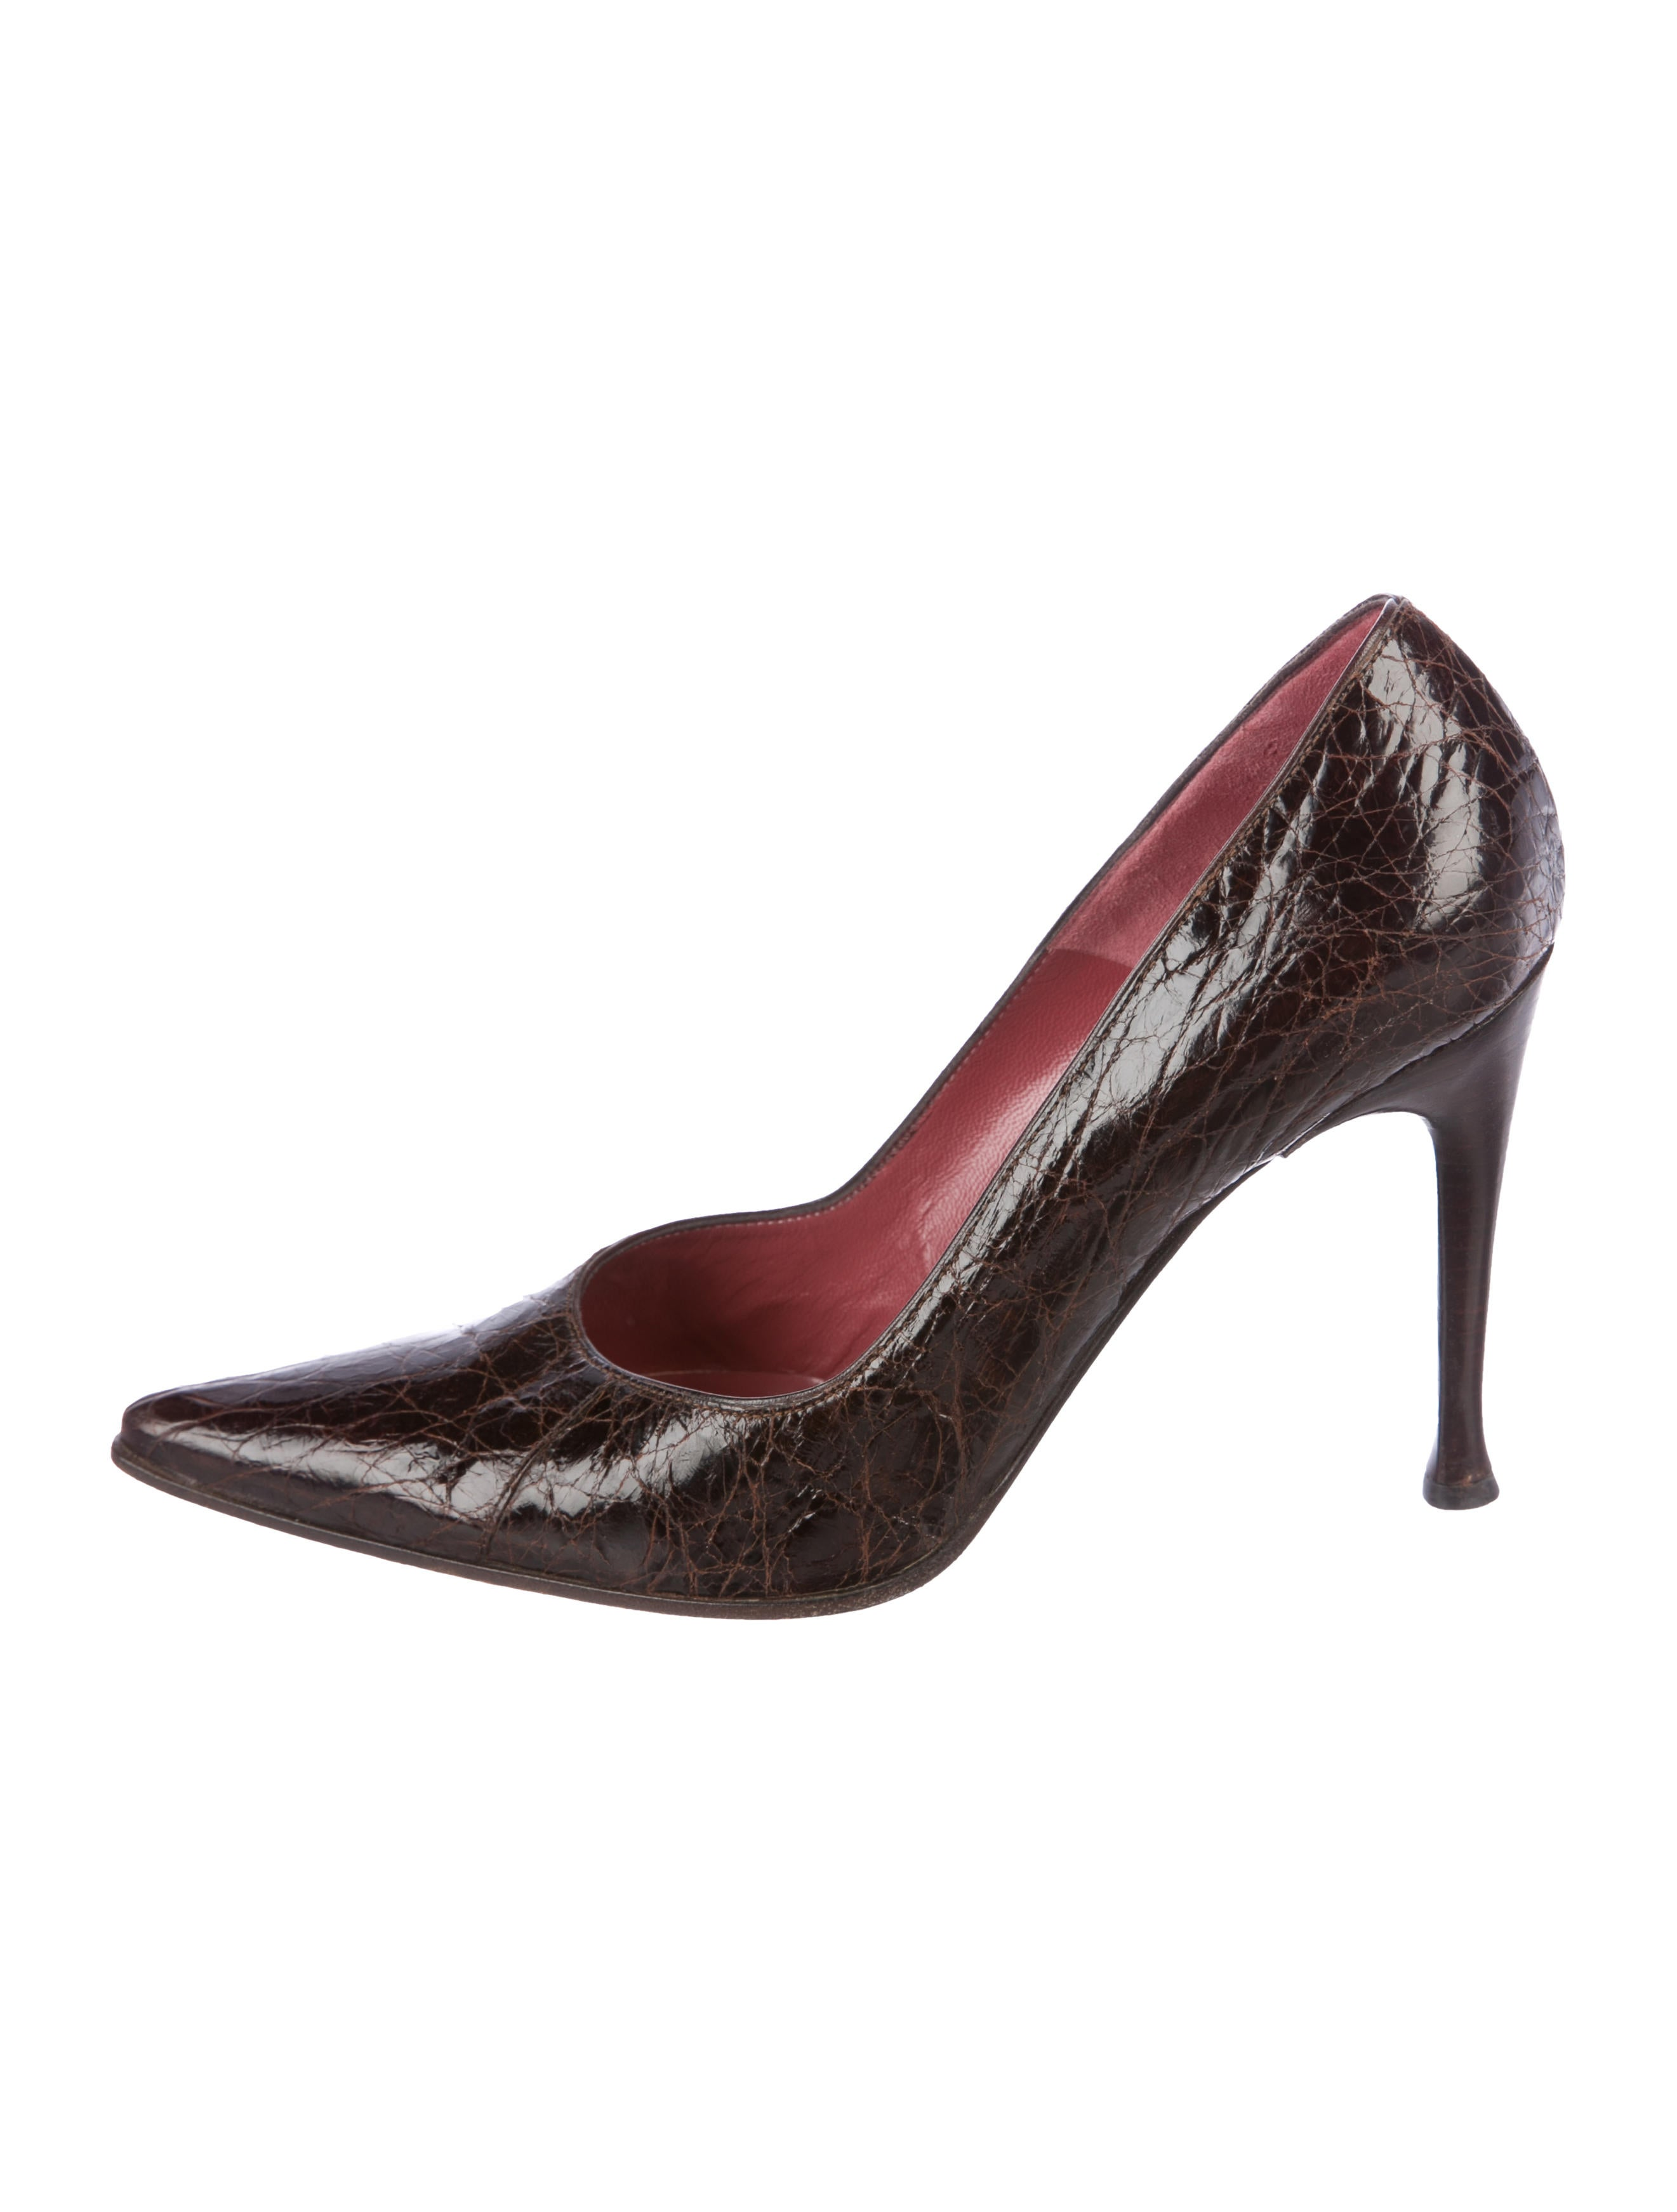 Sergio Rossi Alligator Pointed-Toe Pumps cheap sale exclusive UMpEvPsH